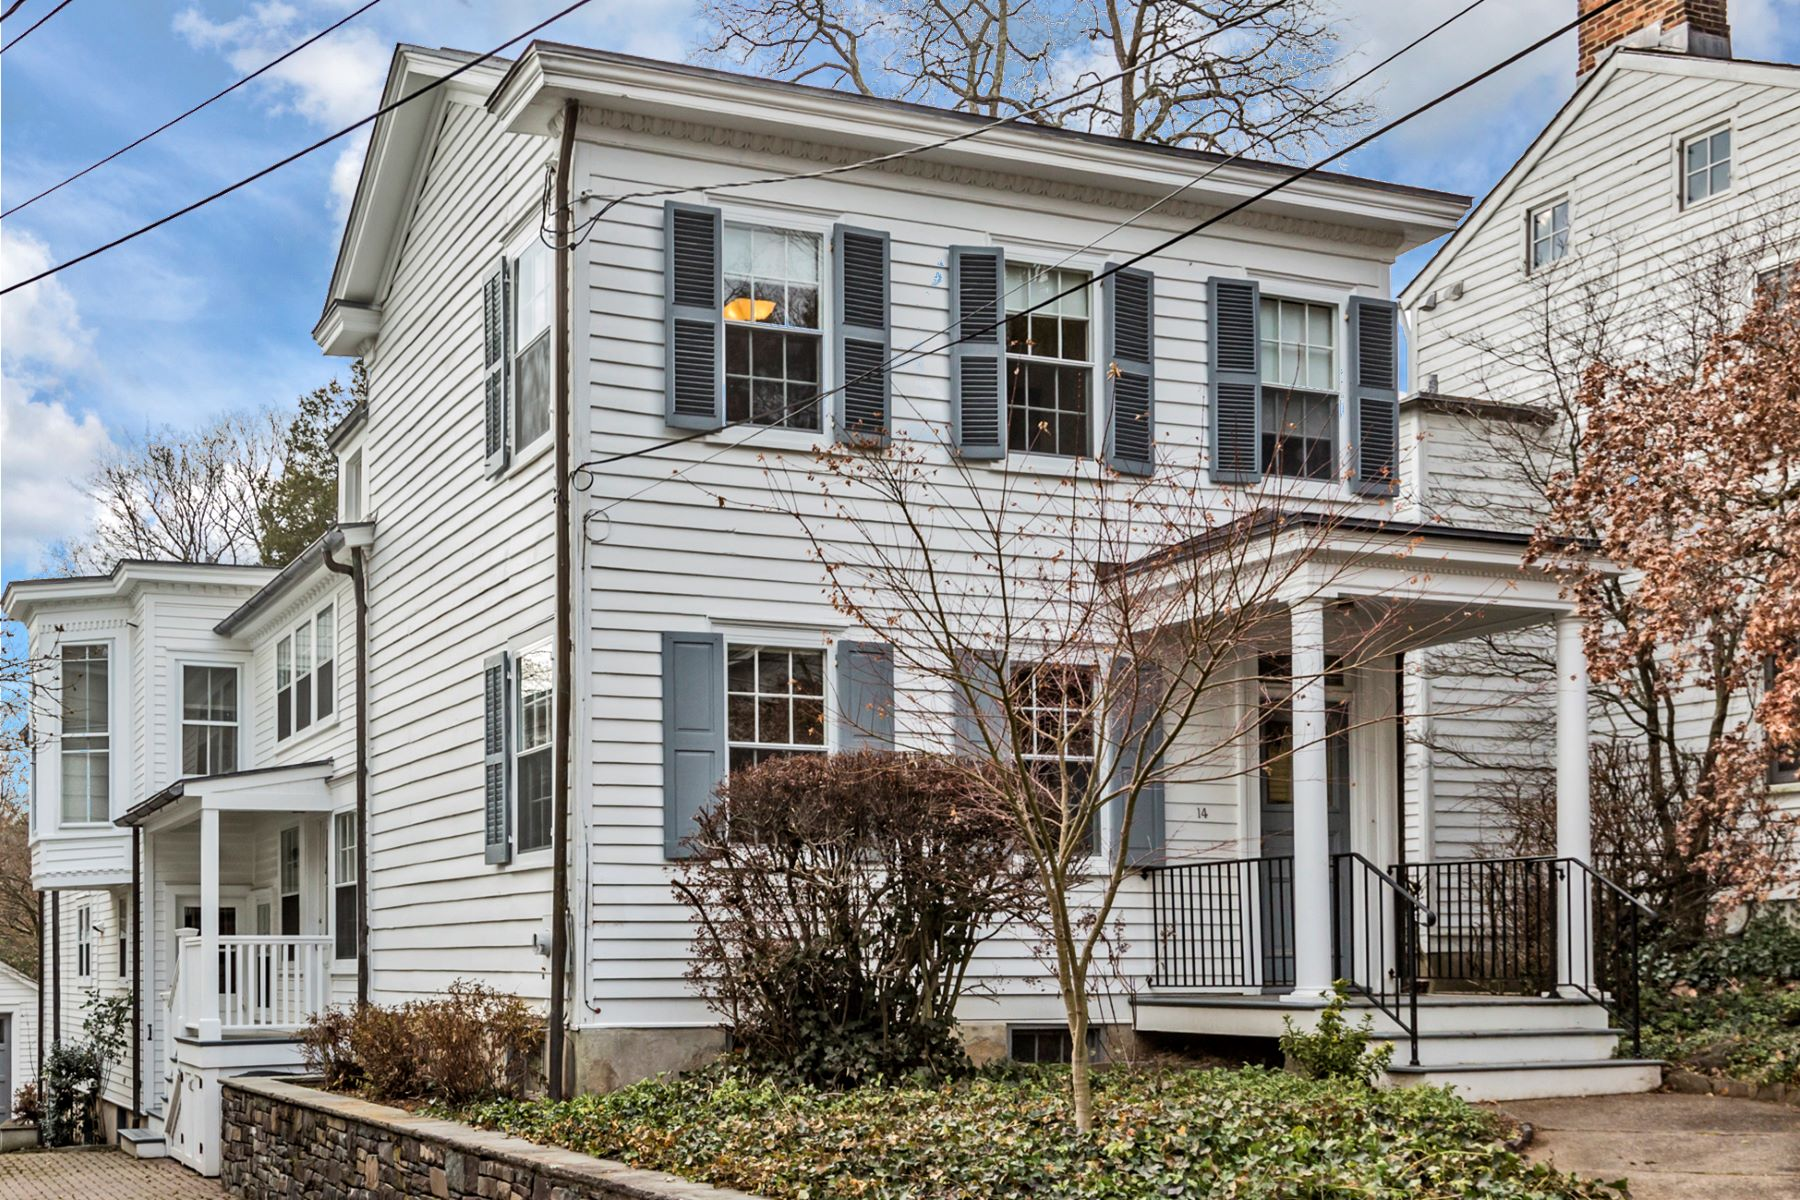 Single Family Home for Sale at A Once In A Lifetime Find 14 Edgehill Street, Princeton, New Jersey, 08540 United StatesIn/Around: Princeton